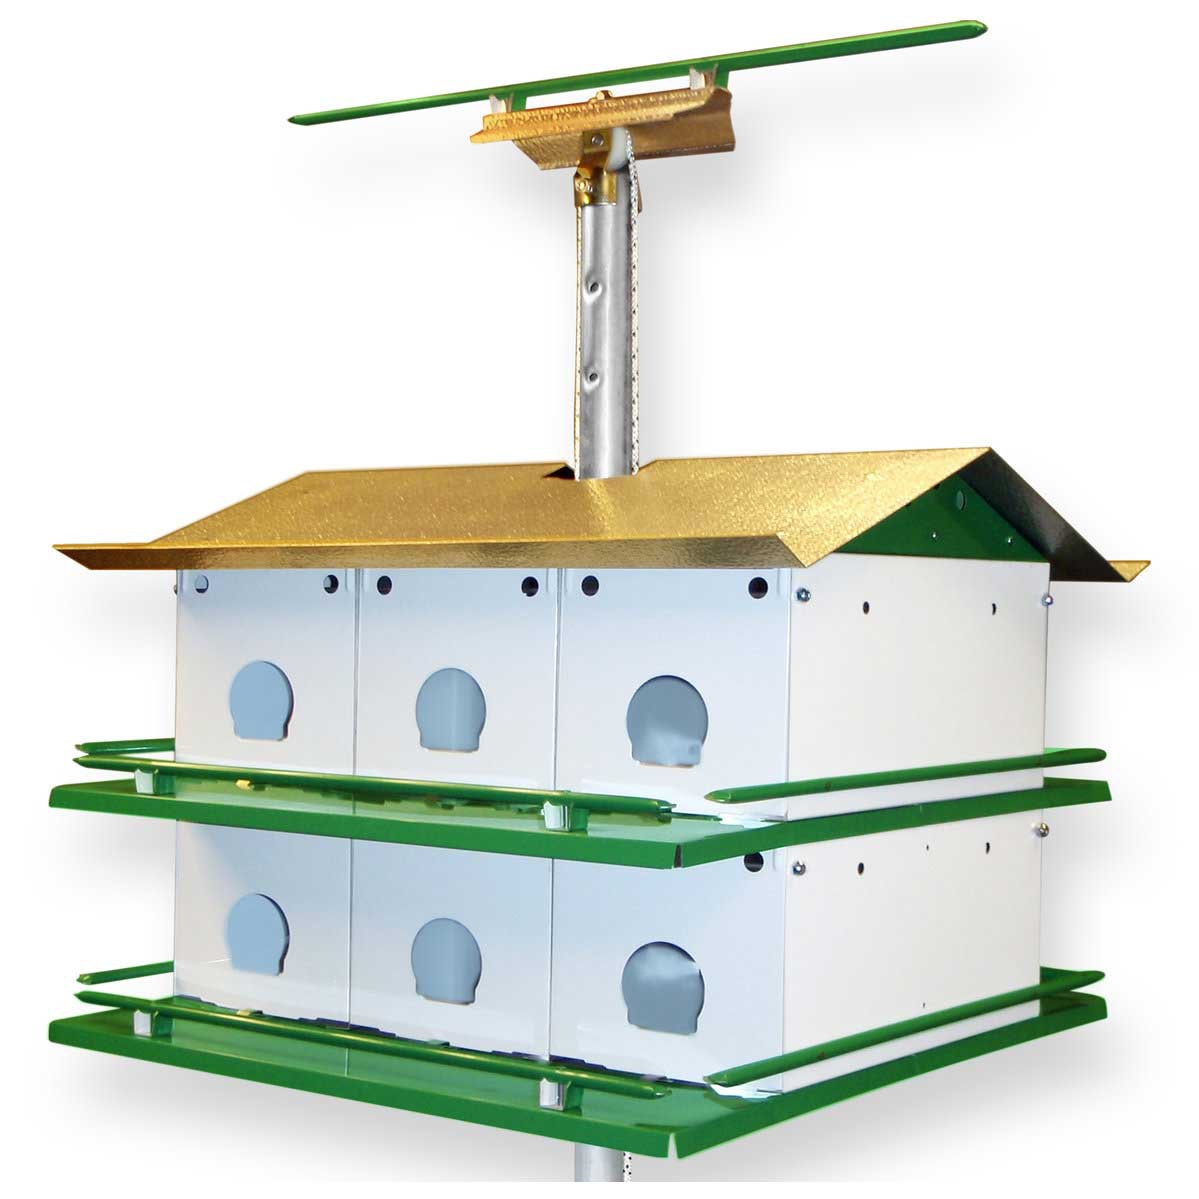 Purple martin bird house safety system with pole yard envy for Martin house designs